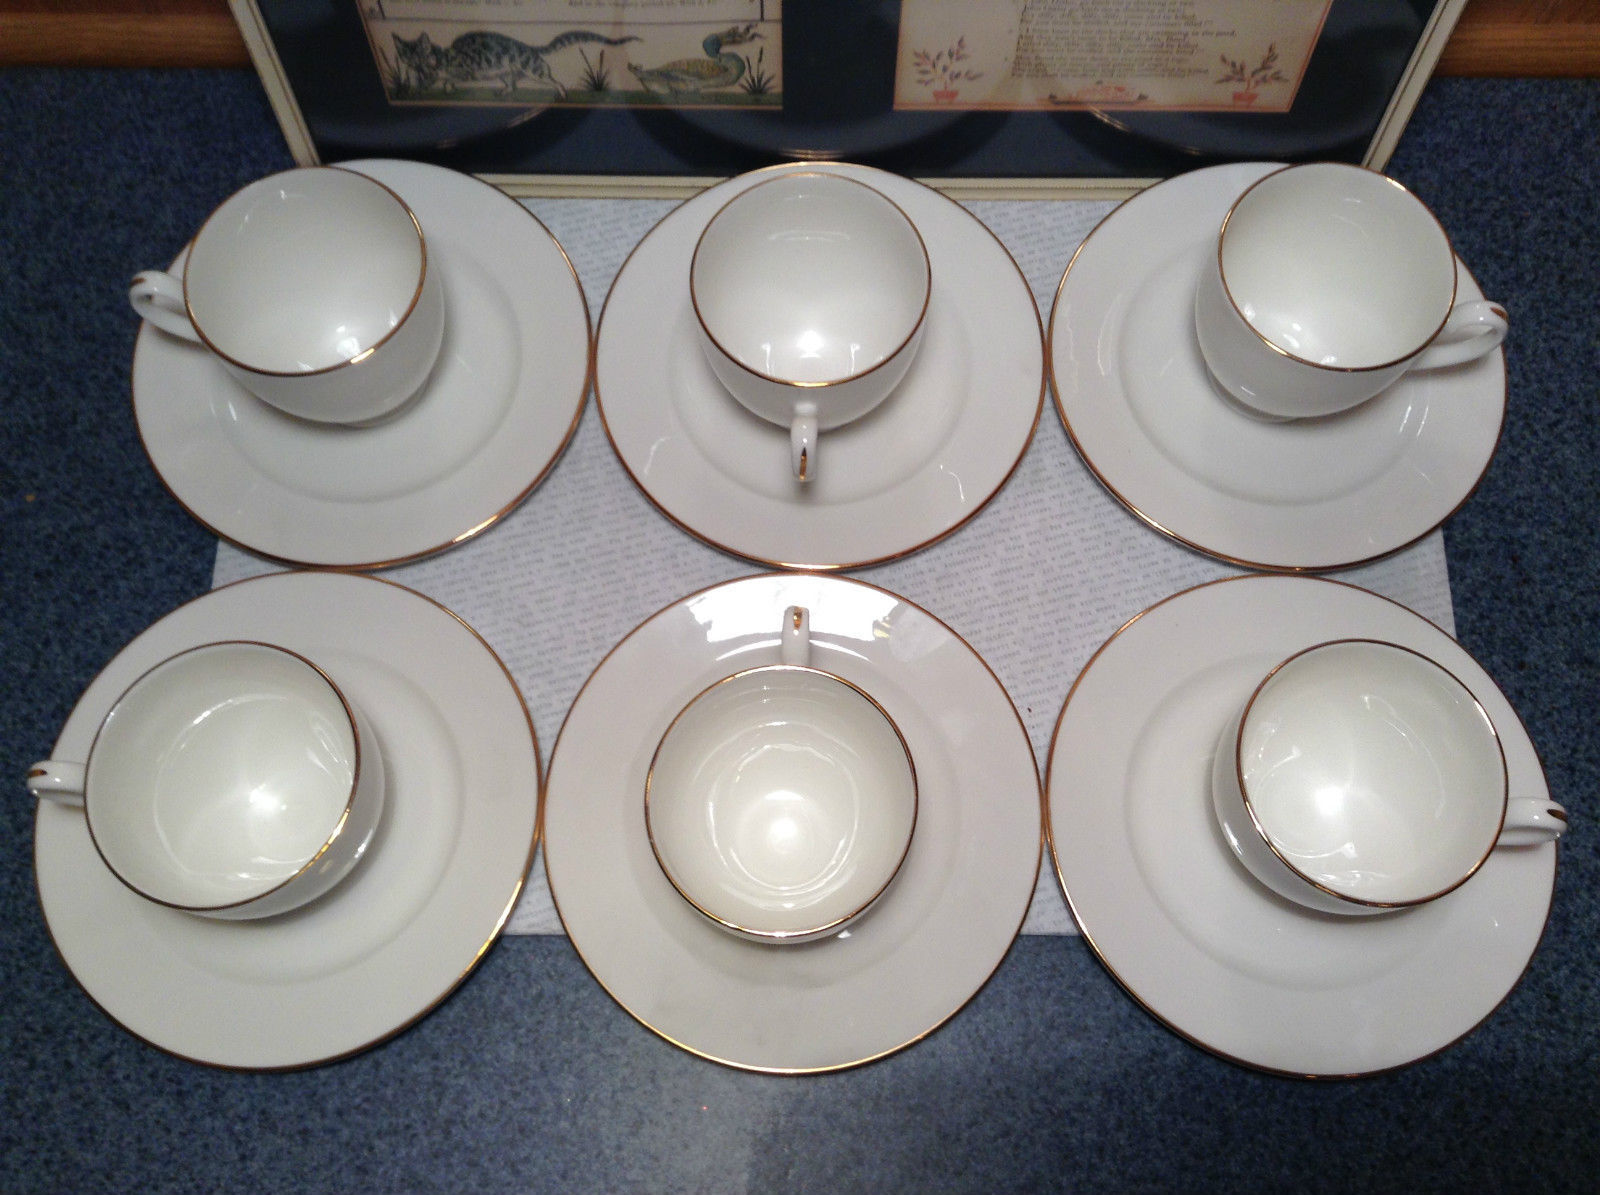 12 Piece Set 6 Cups 6 Saucers Royal Grafton Fine Bone China White with Gold Trim